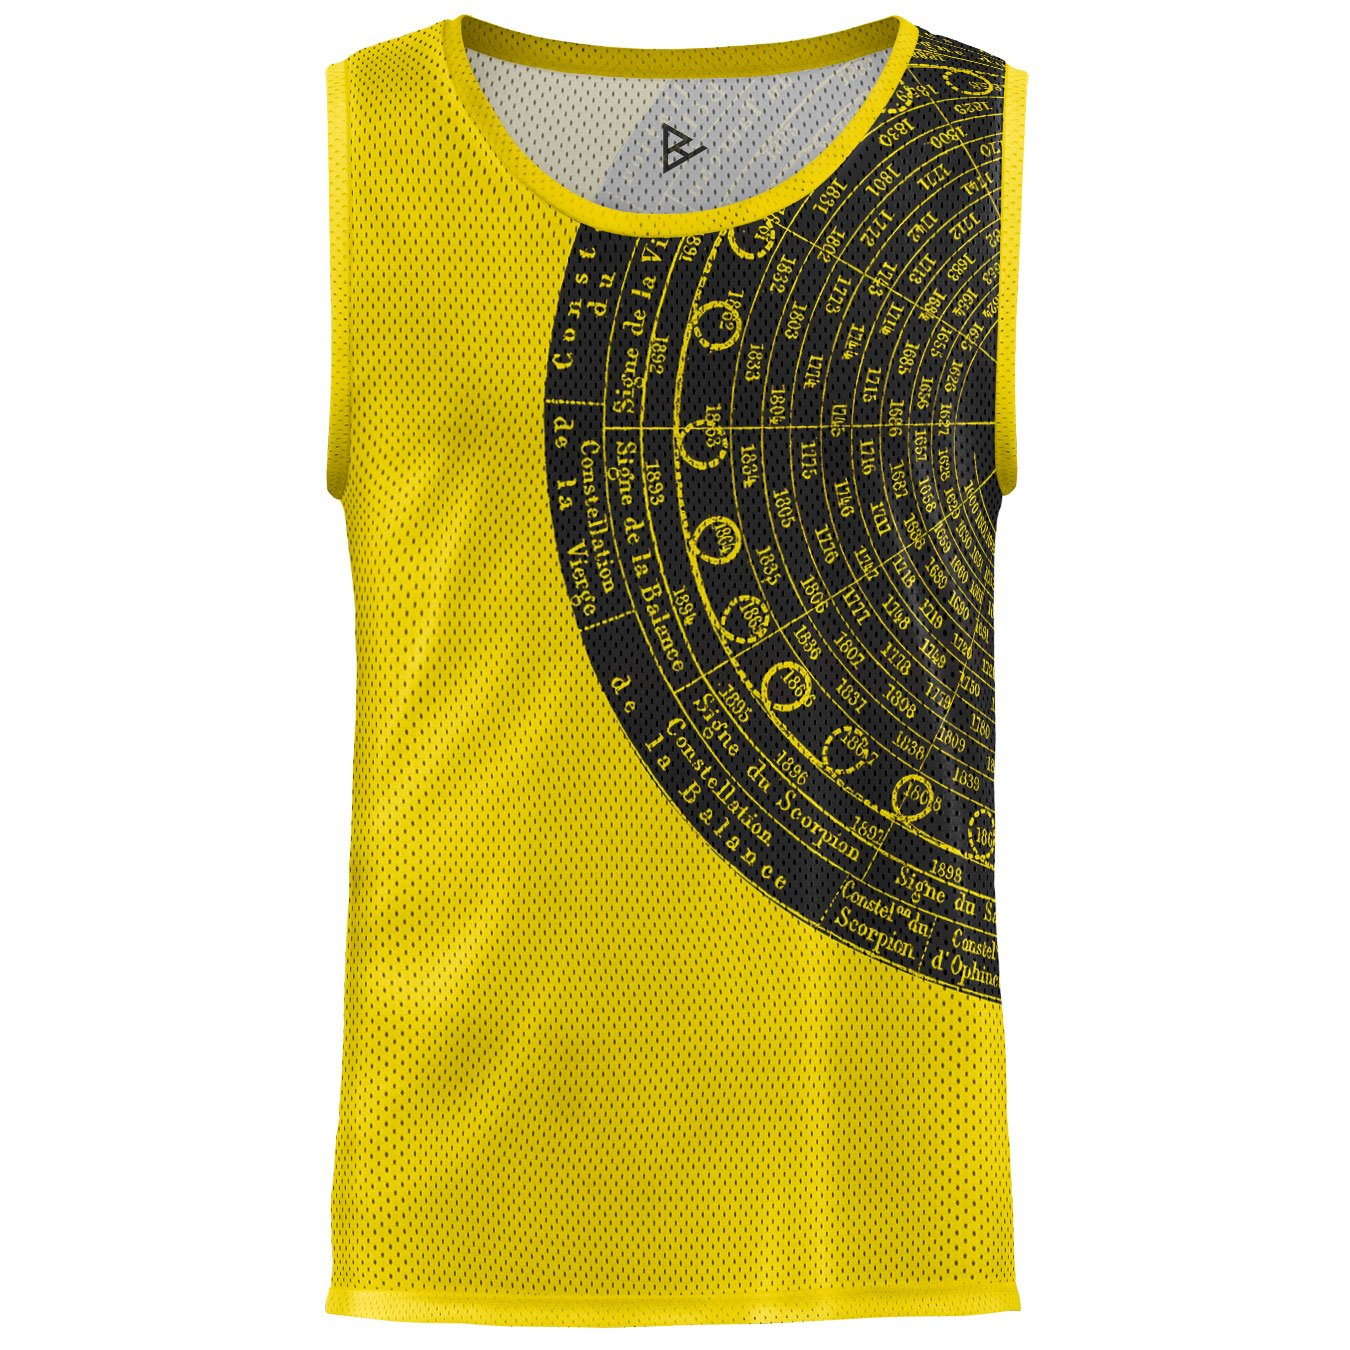 Blowhammer Canotta Tank Top Uomo Astroyellow